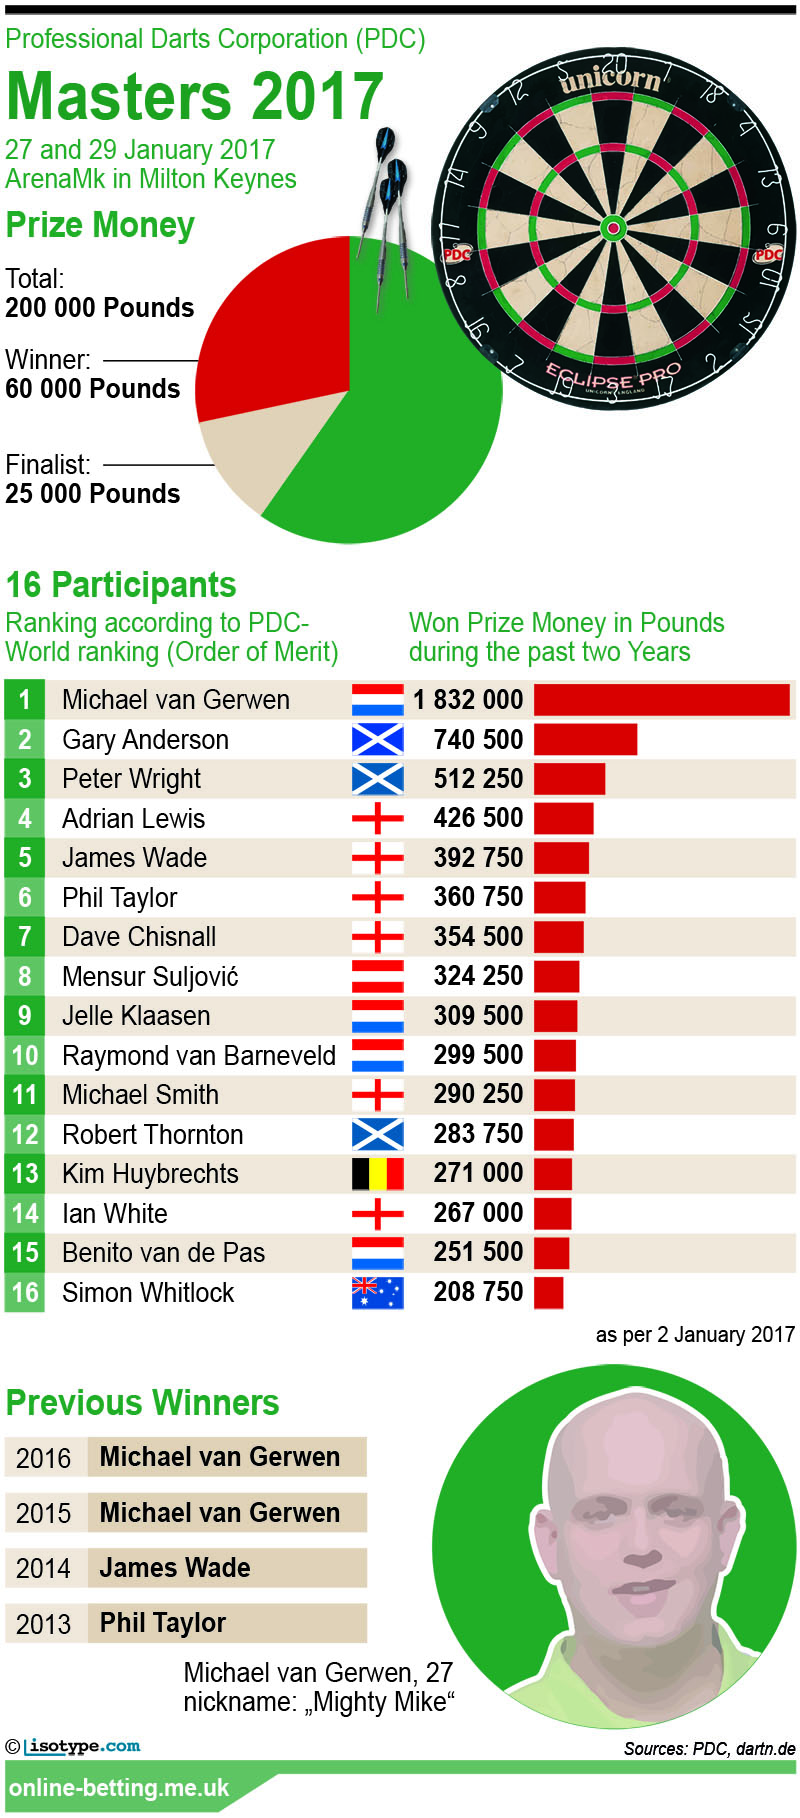 PDC Darts Masters 2017 Infographic